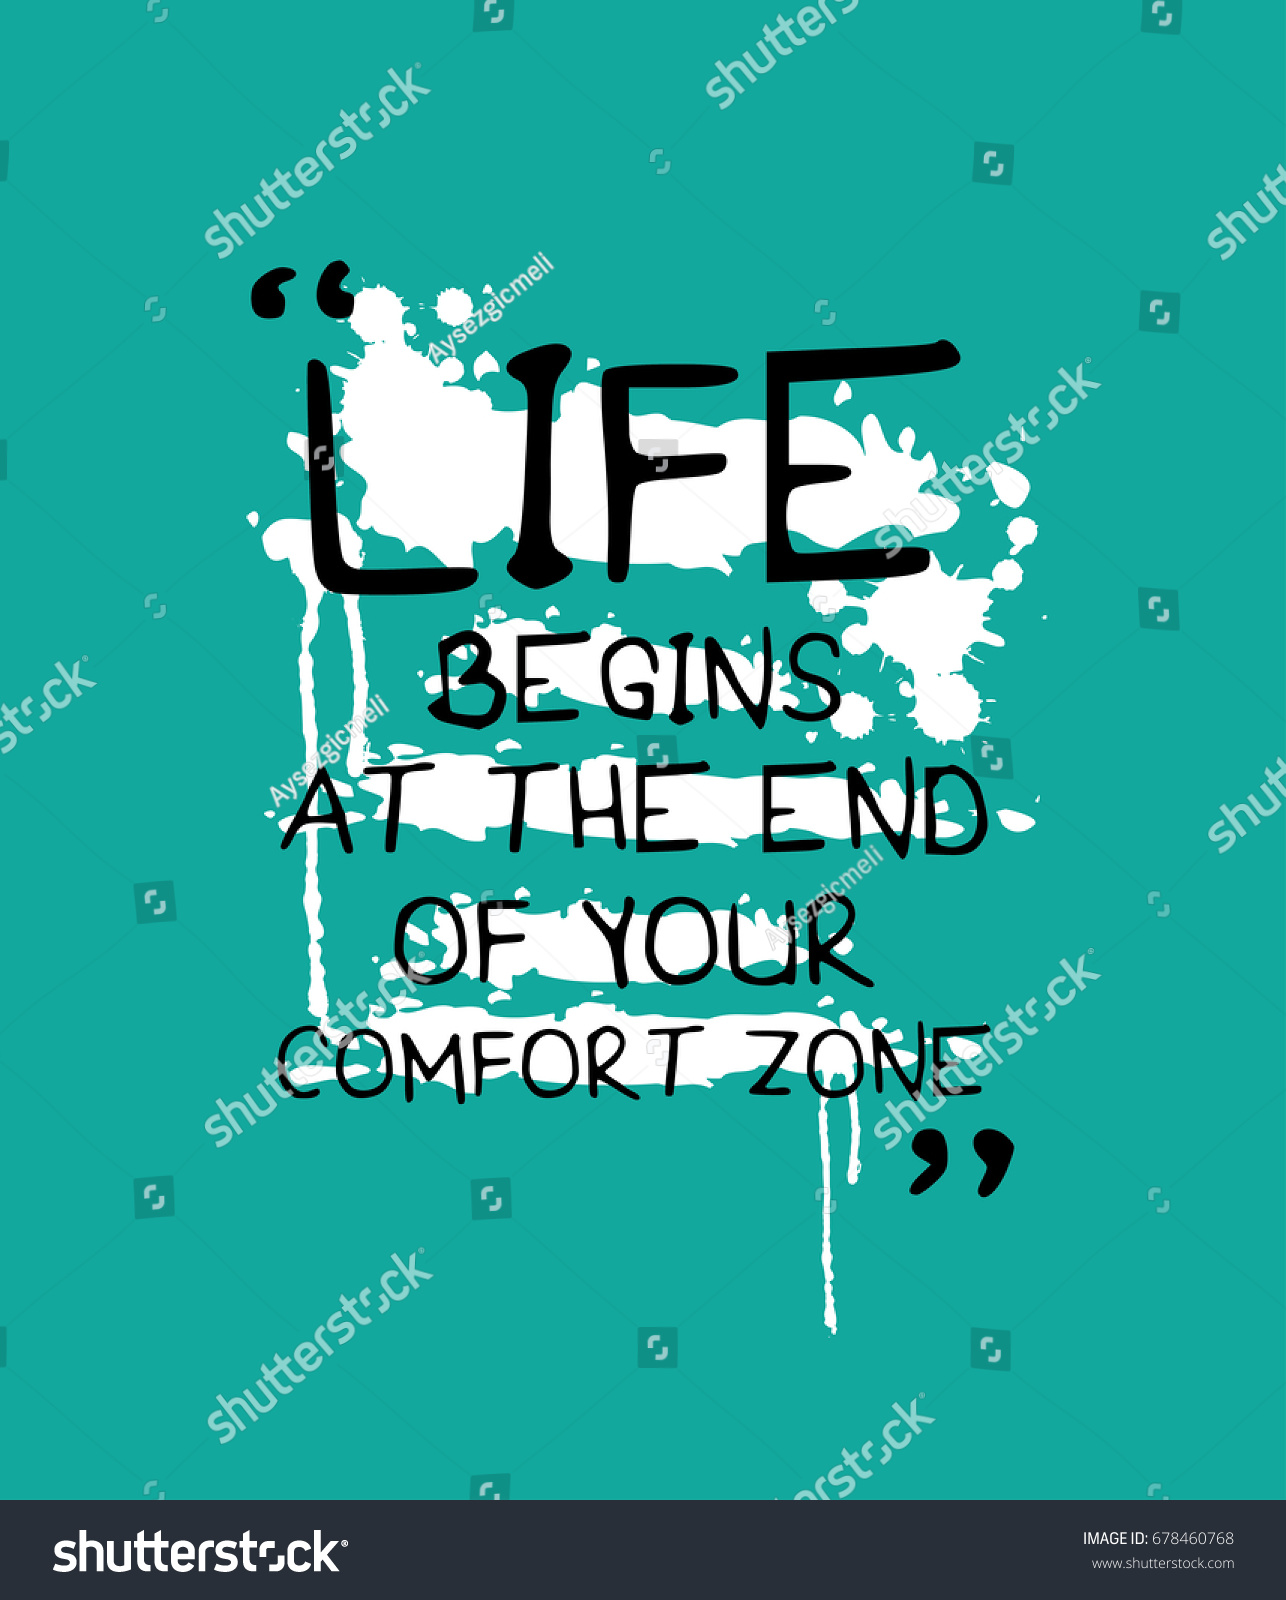 End Of Life Quotes Inspirational Life Begins End Your Comfort Zone Stock Vector 678460768